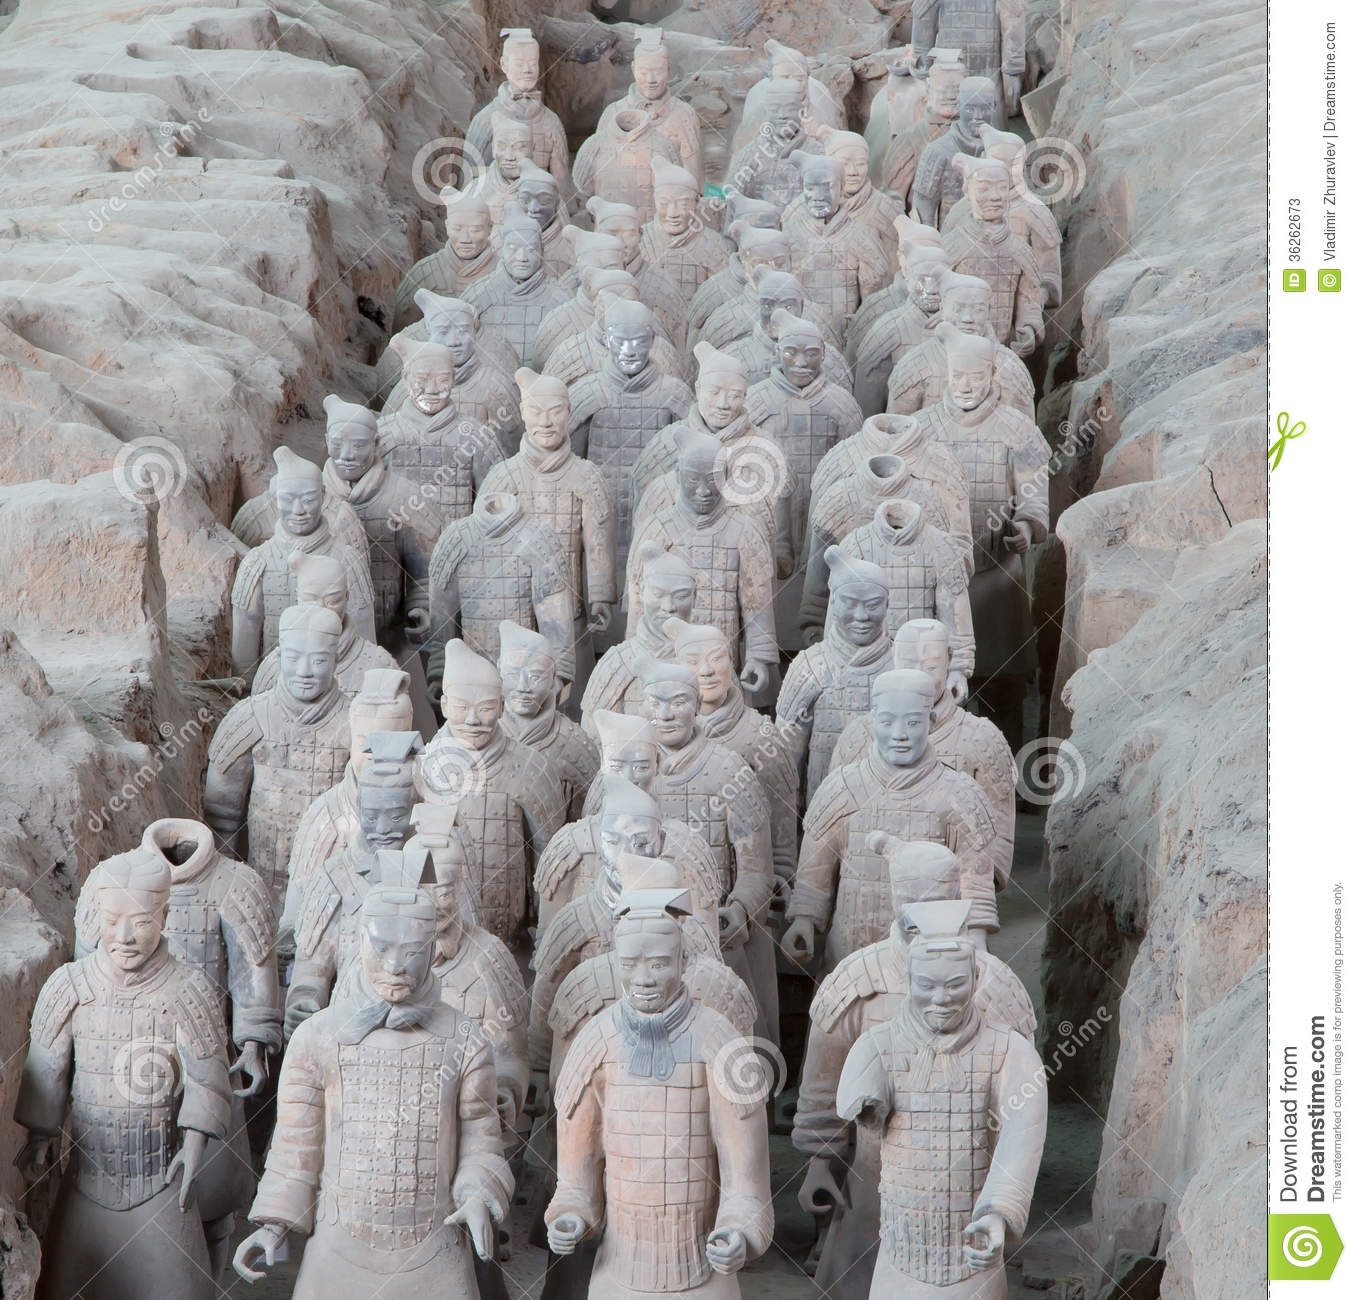 the qin dynadsty in china China's first unified empire historians point out that it's curious that climactic events around the world were unfolding around this same periodeven though far apart and totally unconnected when the qin dynasty started, civilizations of egypt and greece were in [.